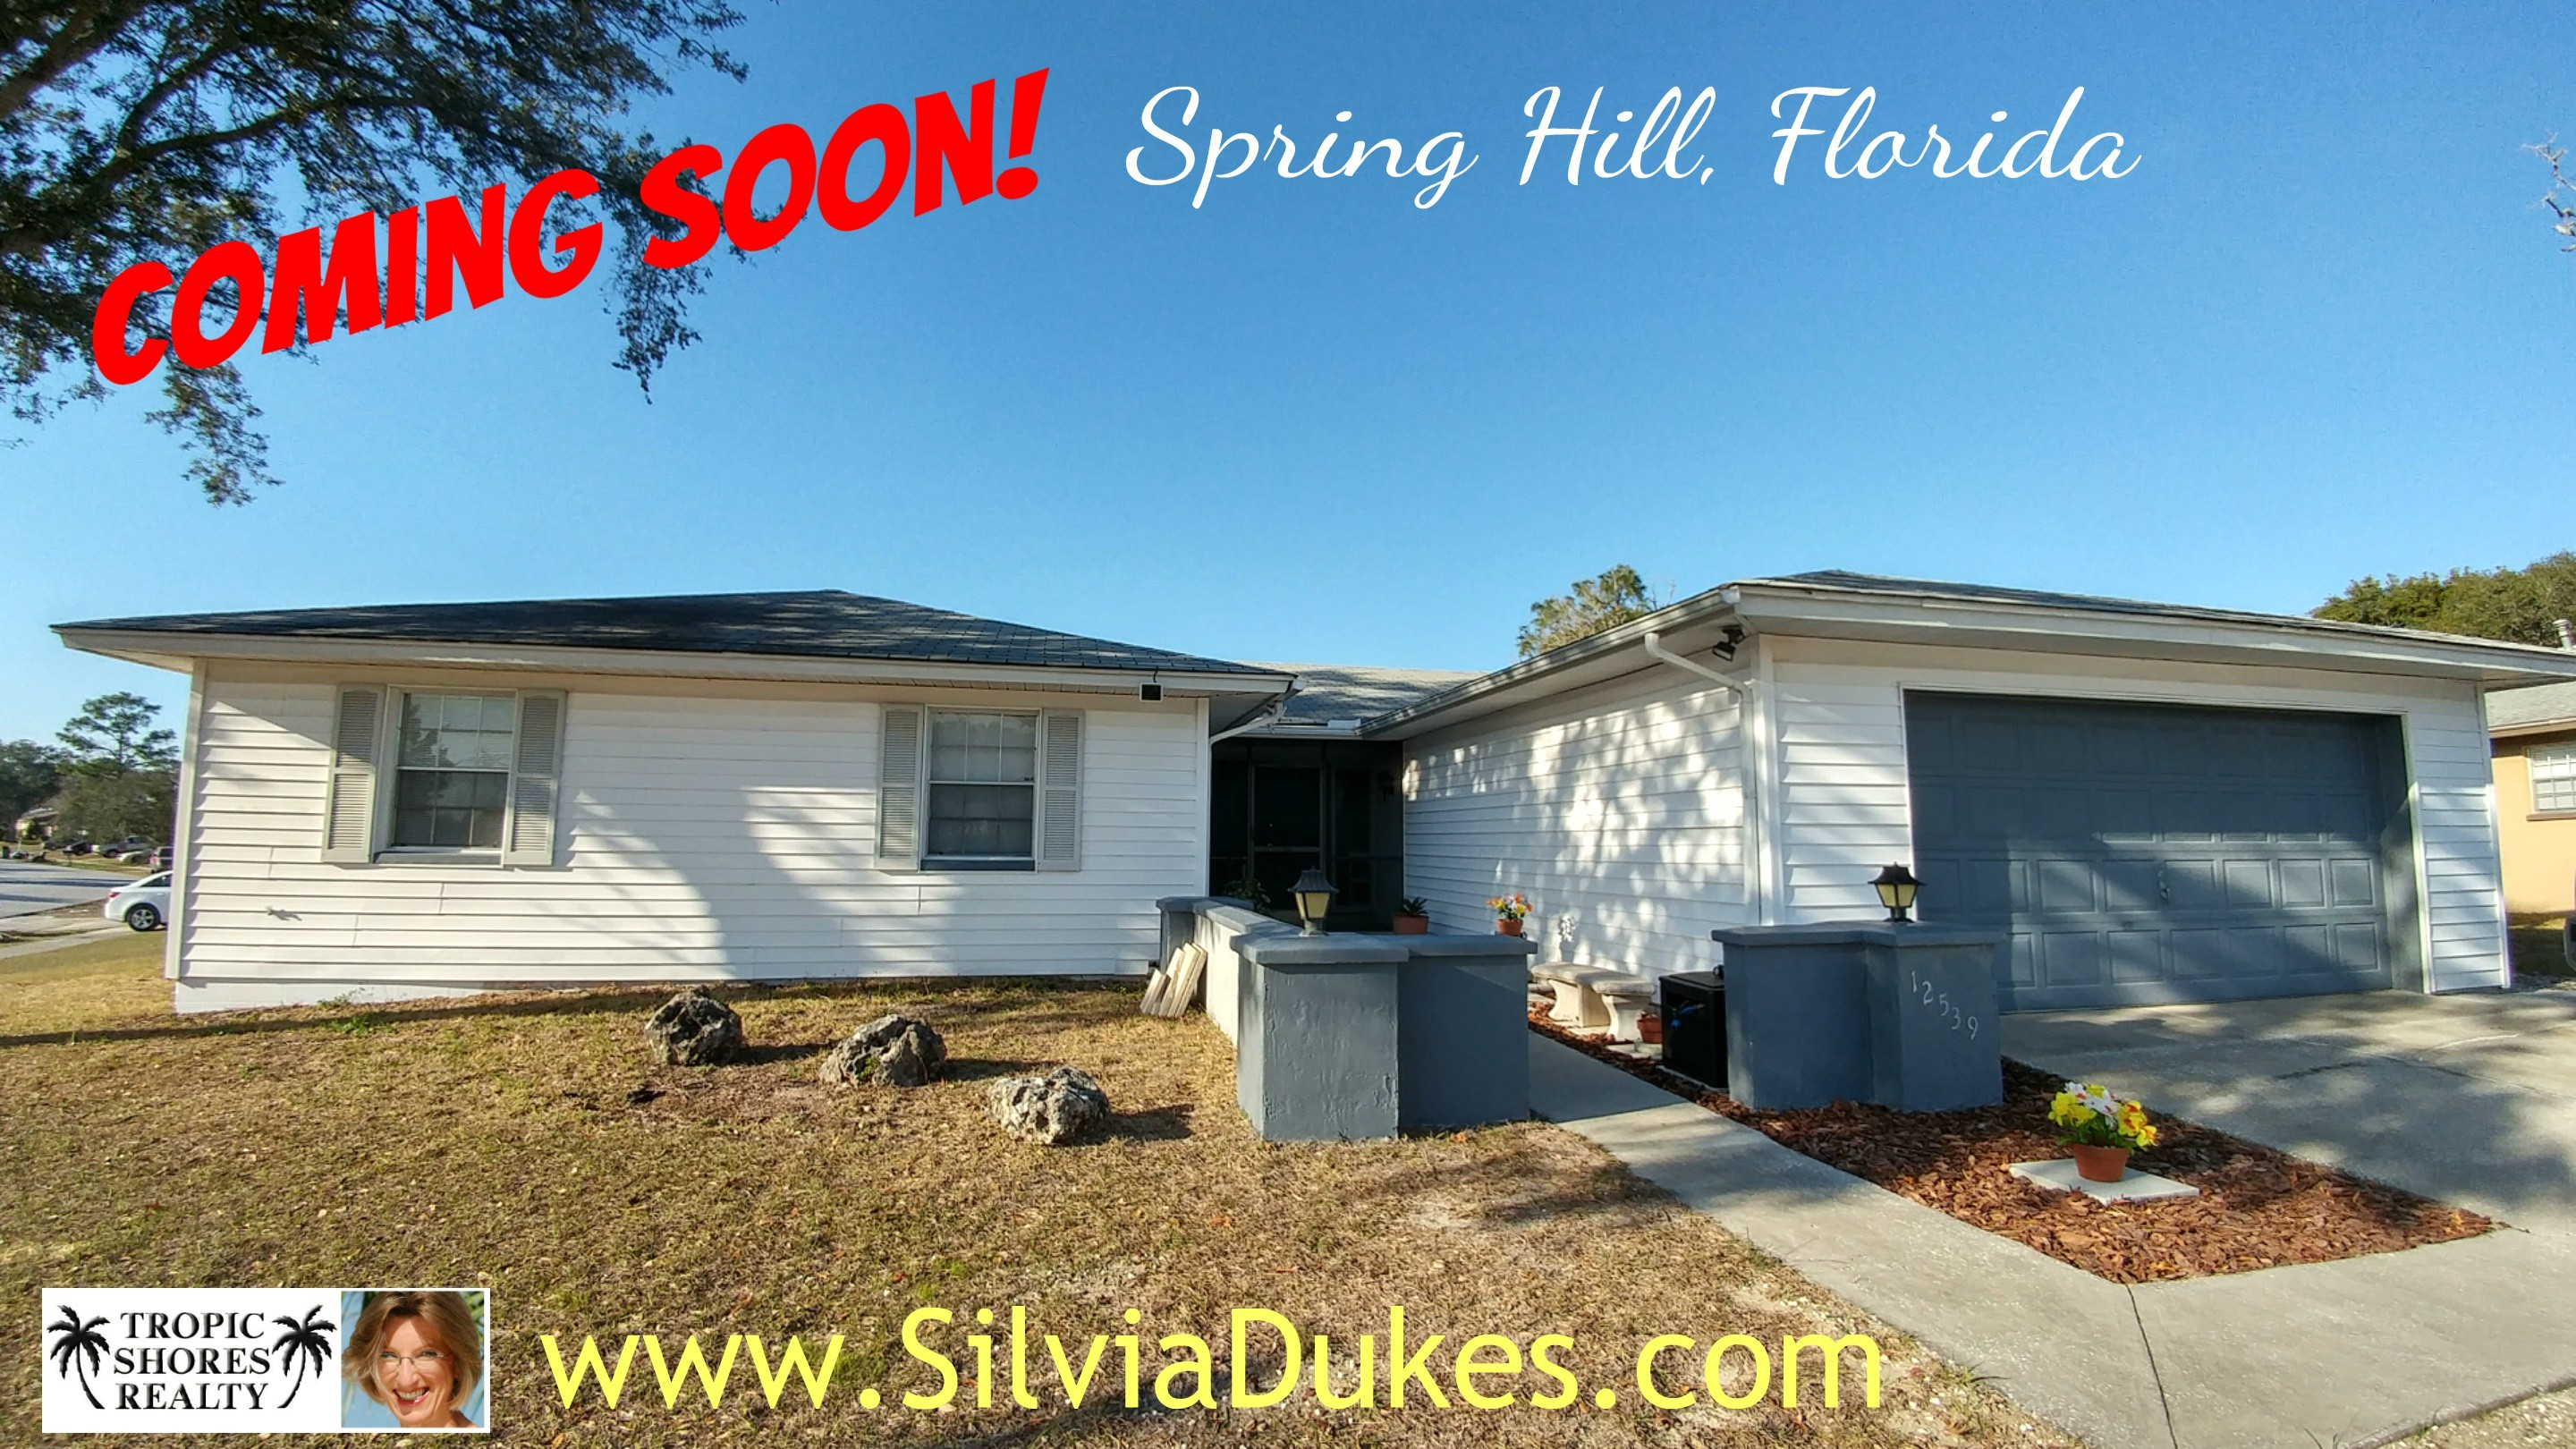 Coming Soon Four Bedroom Pool Home in Spring Hill by Realtor Silvia Dukes